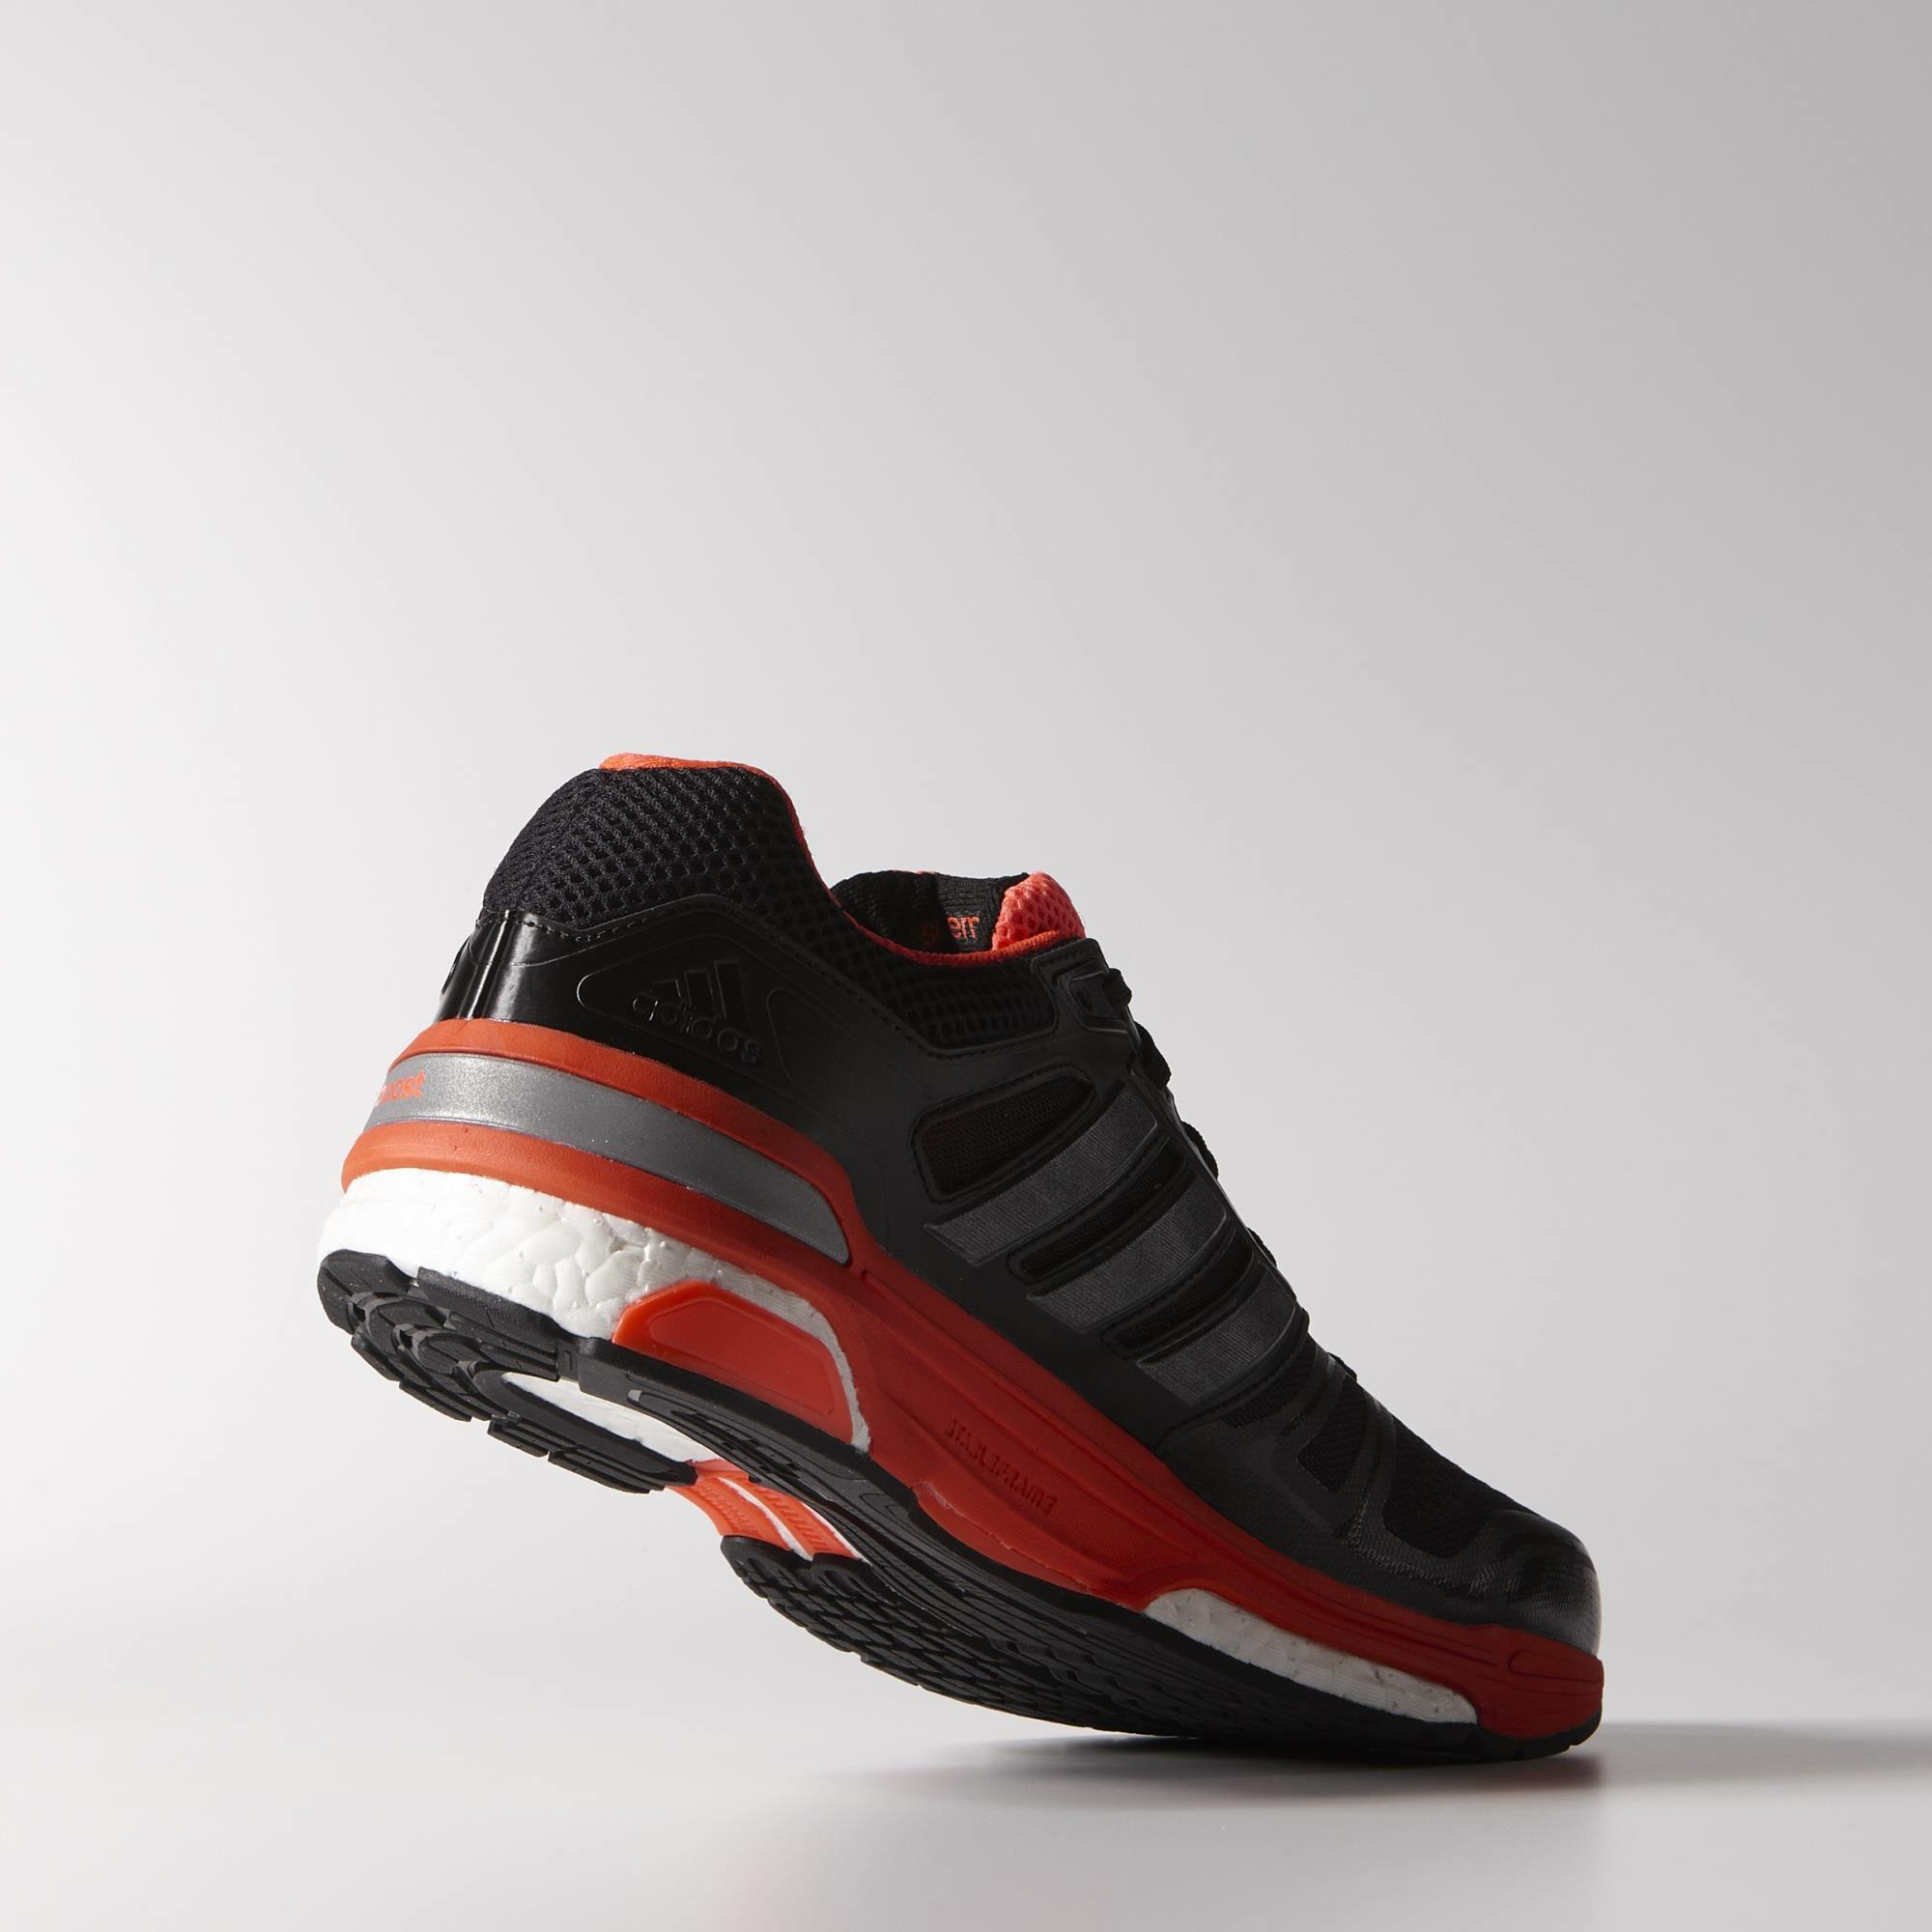 30c61a0cb Adidas Mens Supernova Sequence Boost 7 Running Shoes - Black Infrared